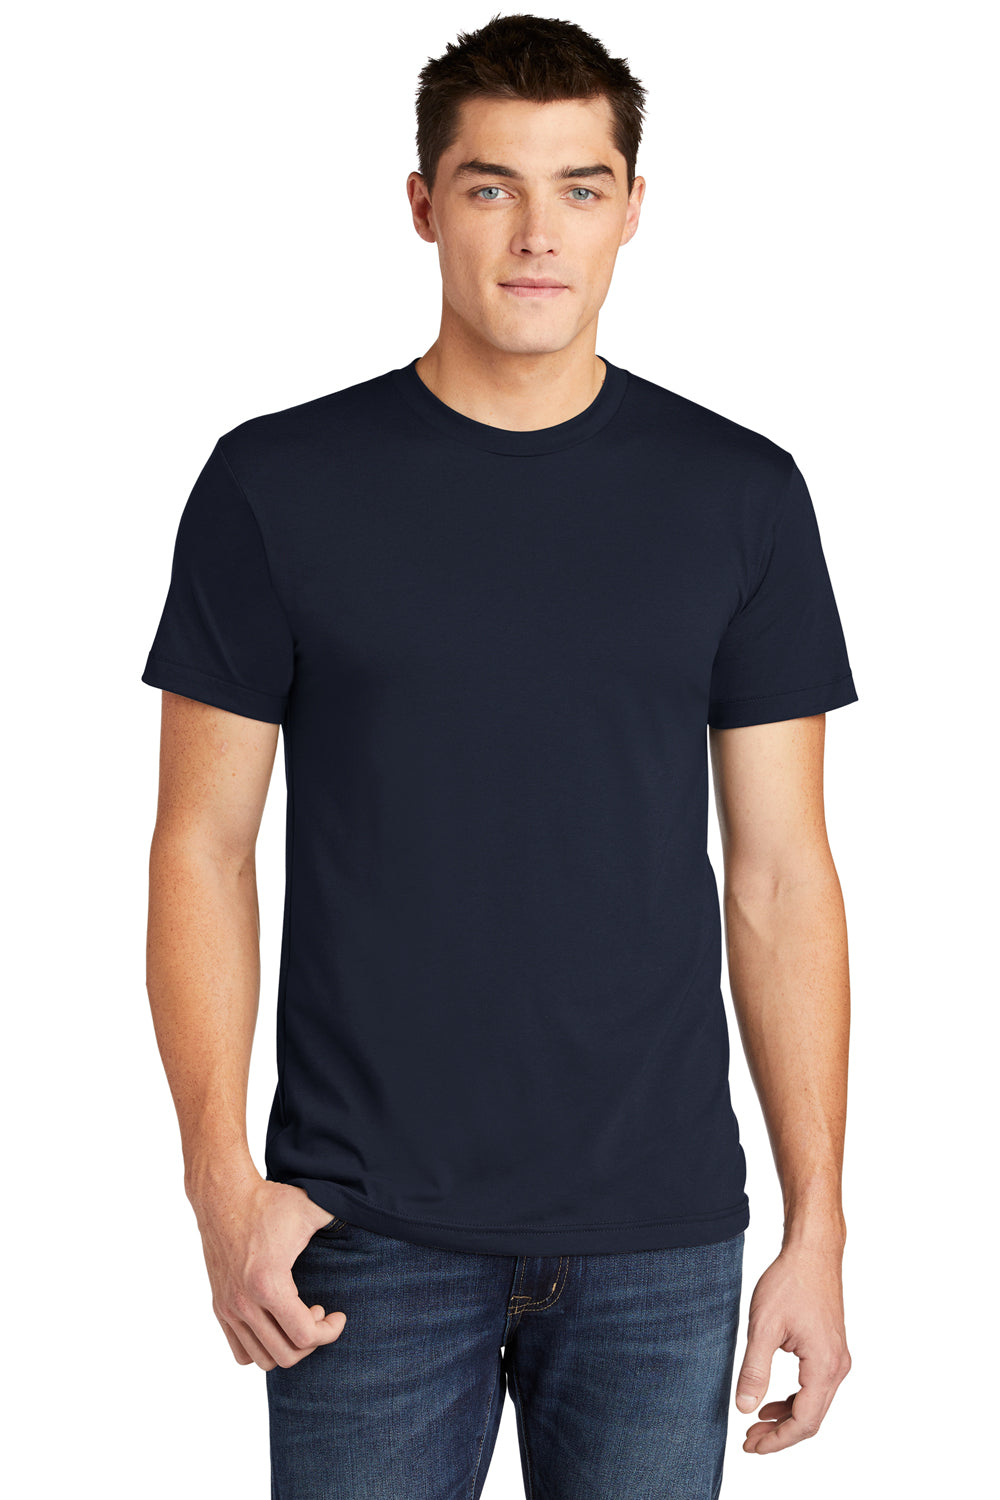 American Apparel BB401W Mens Short Sleeve Crewneck T-Shirt Navy Blue Front